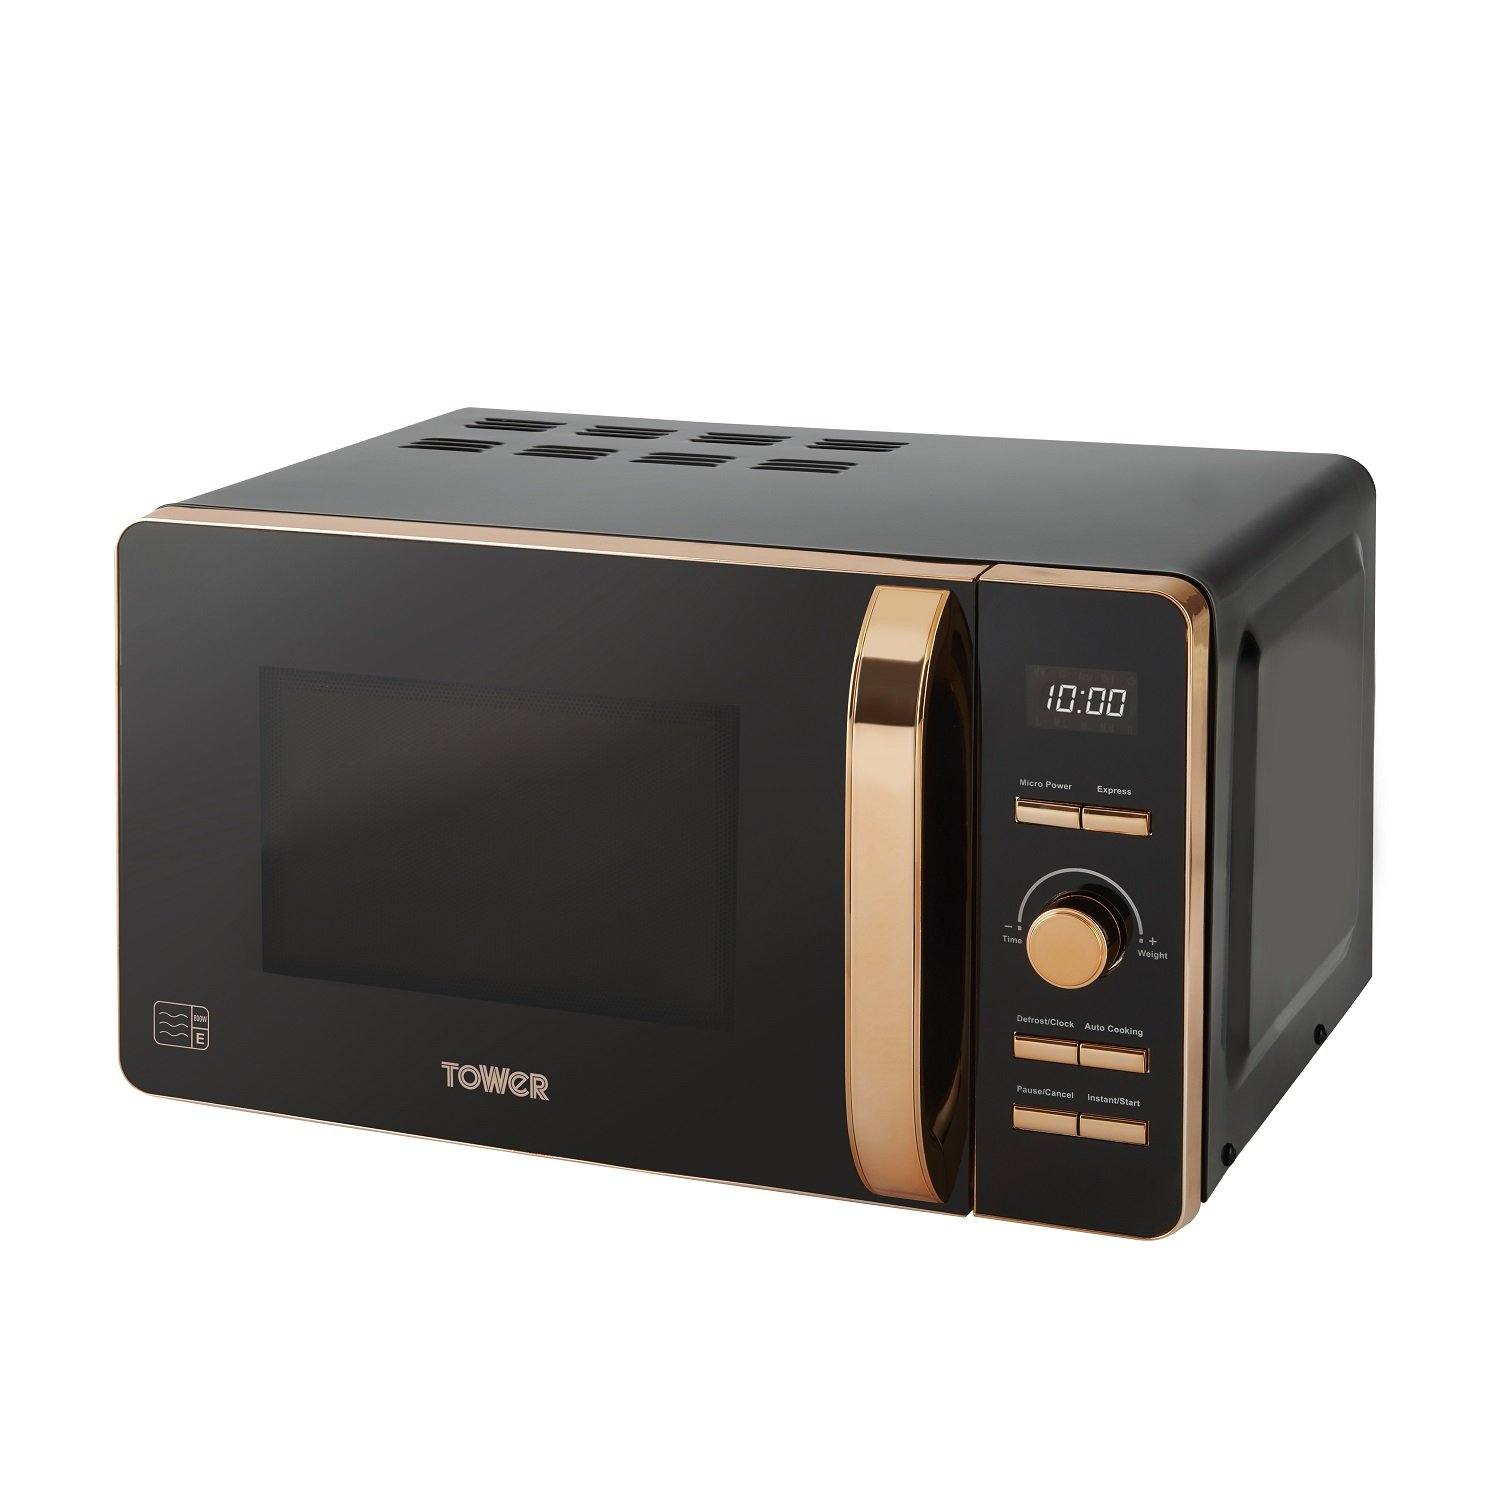 Tower T24021 Digital Solo Microwave with 6 Power Levels